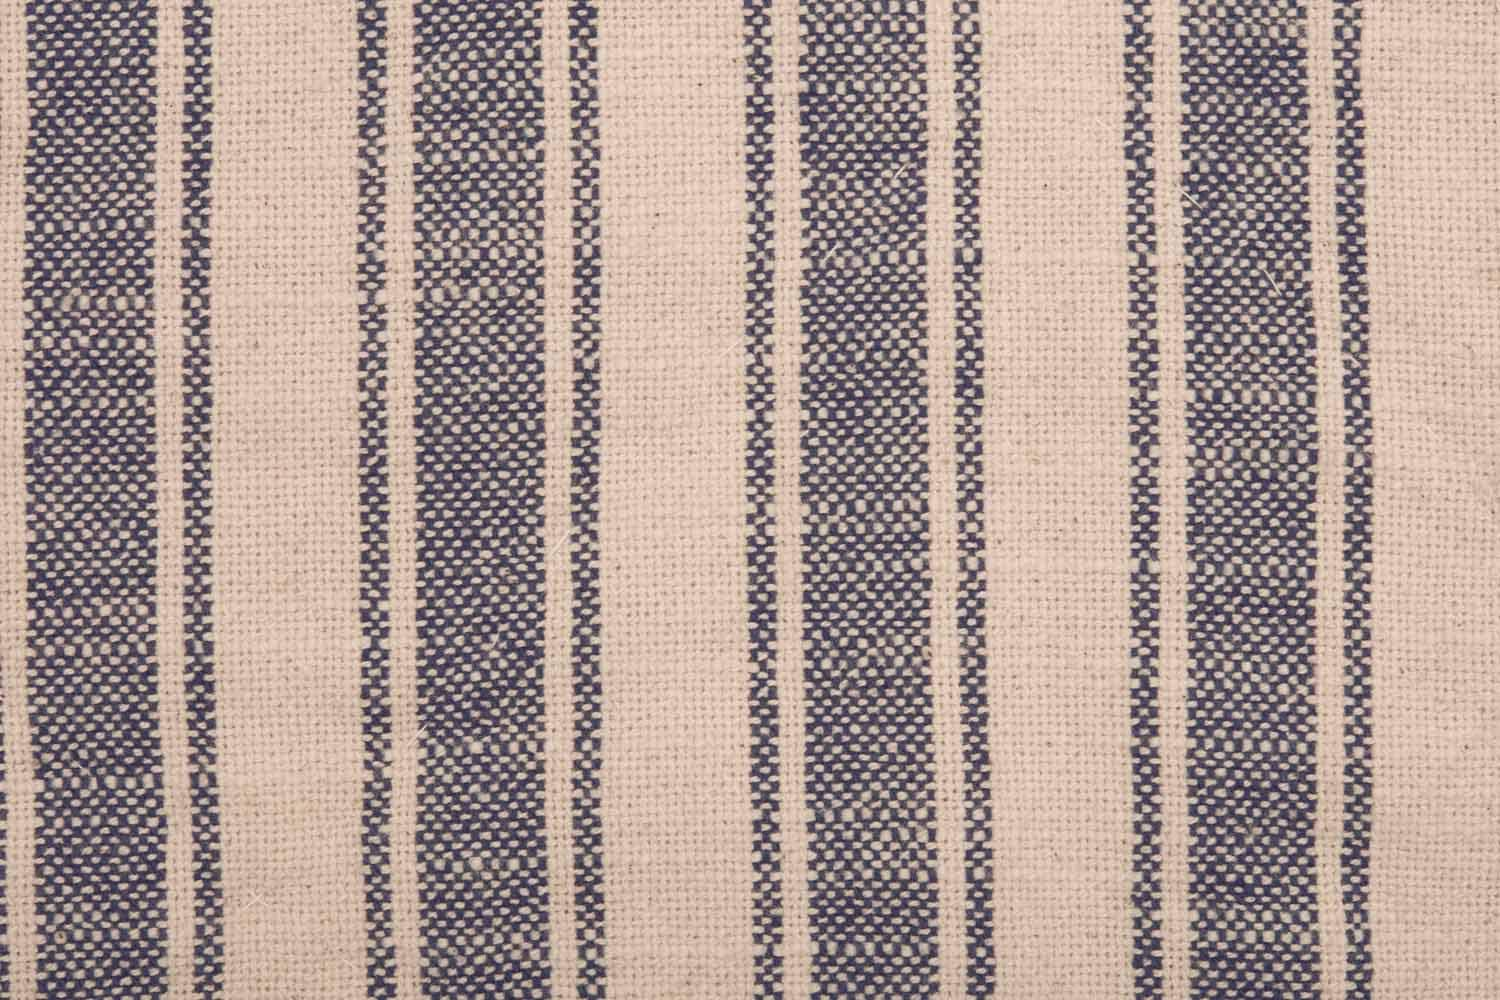 21 x 27 Piper Classics Market Place Blue Ticking Stripe Standard Size Pillow Sham Farmhouse Style Bedding in Blue and Natural Cream